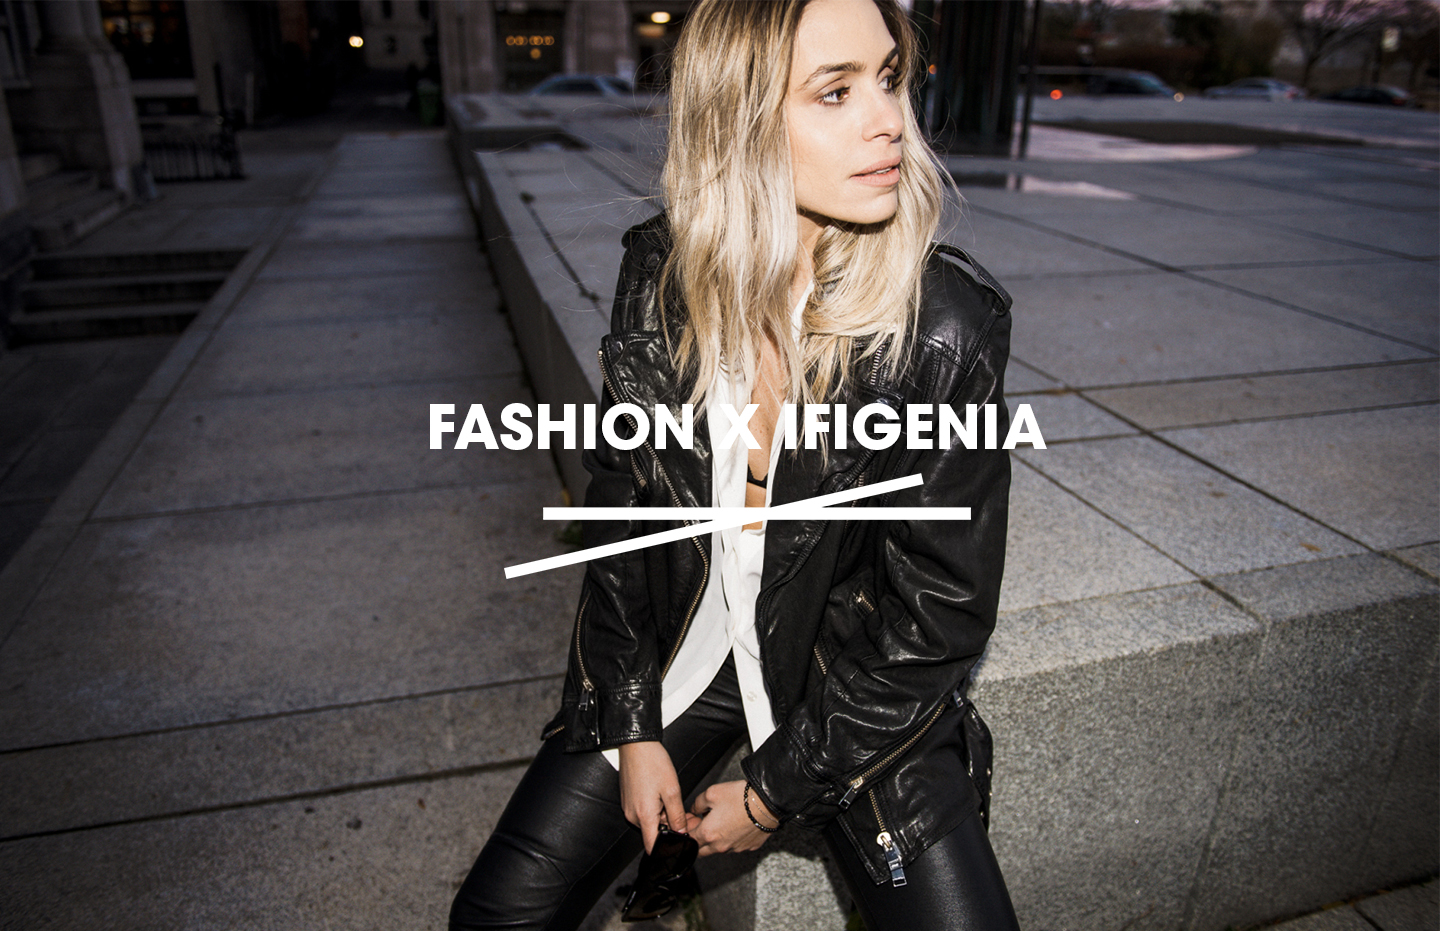 FASHION X IFIGENIA